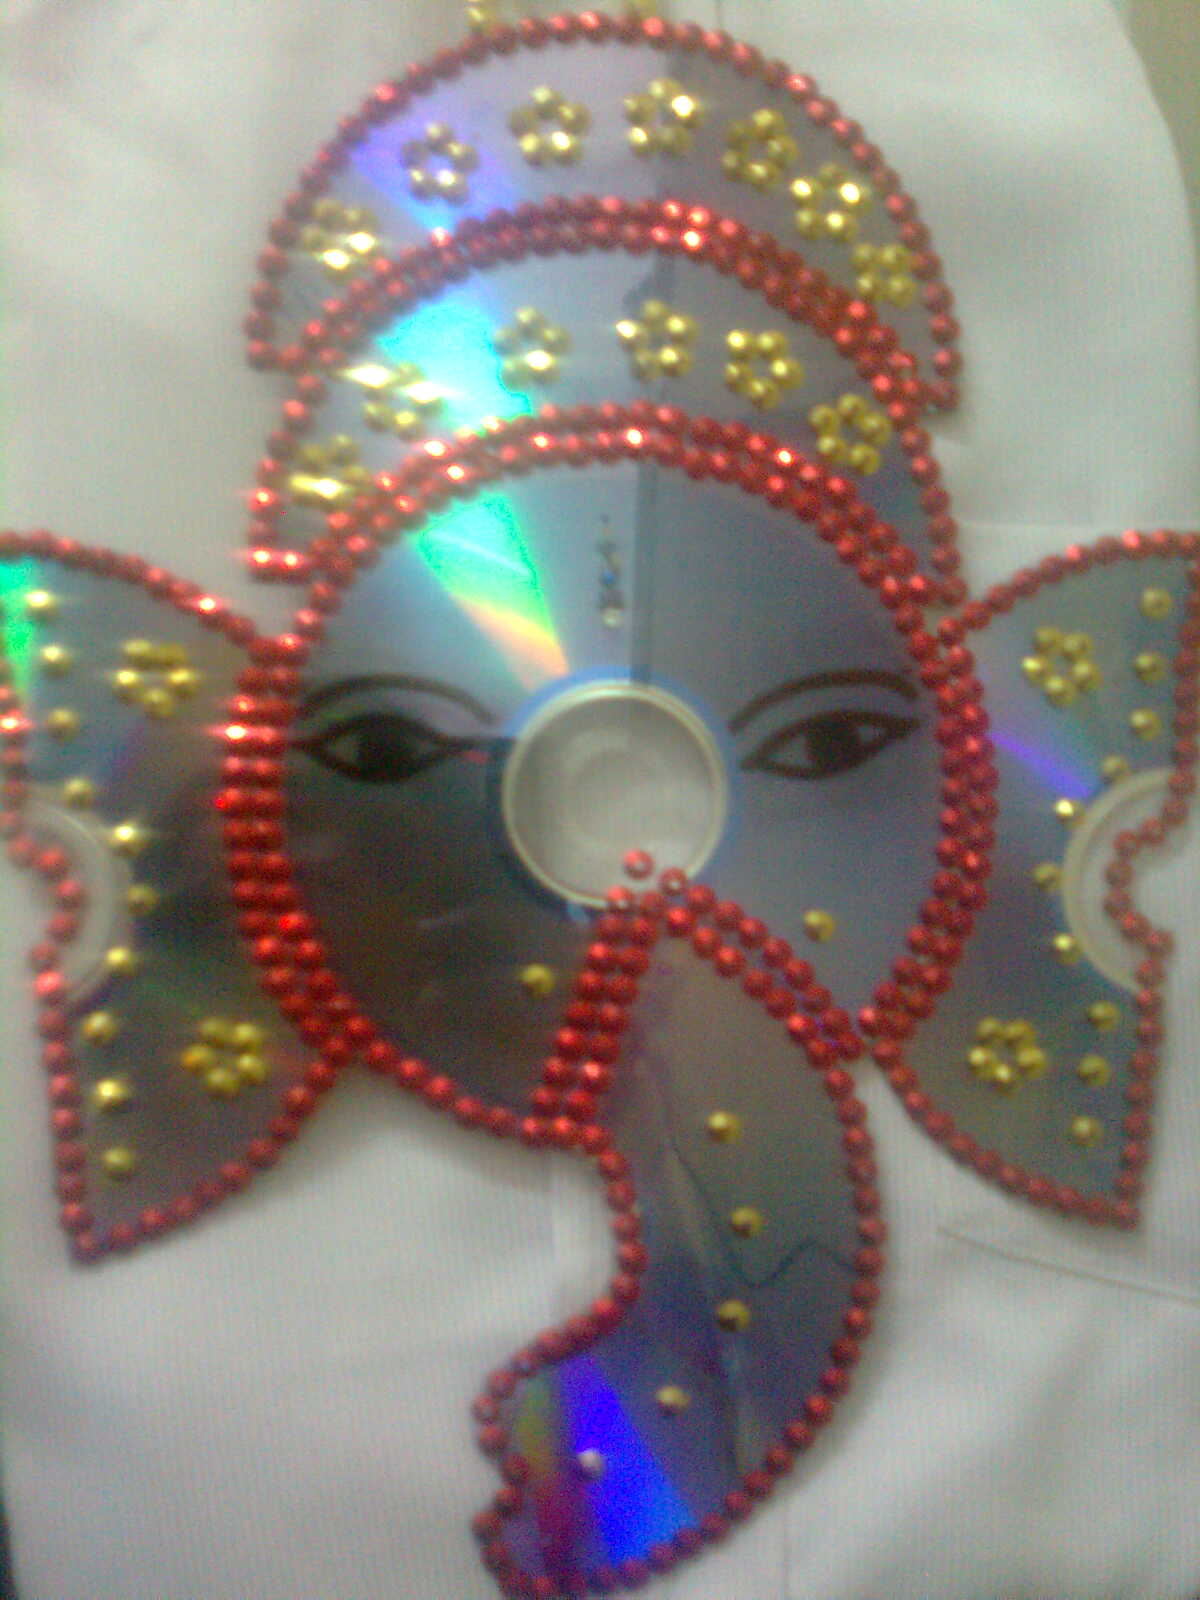 Maha arts crafts cd ganesh vinayagar for Useful things from waste